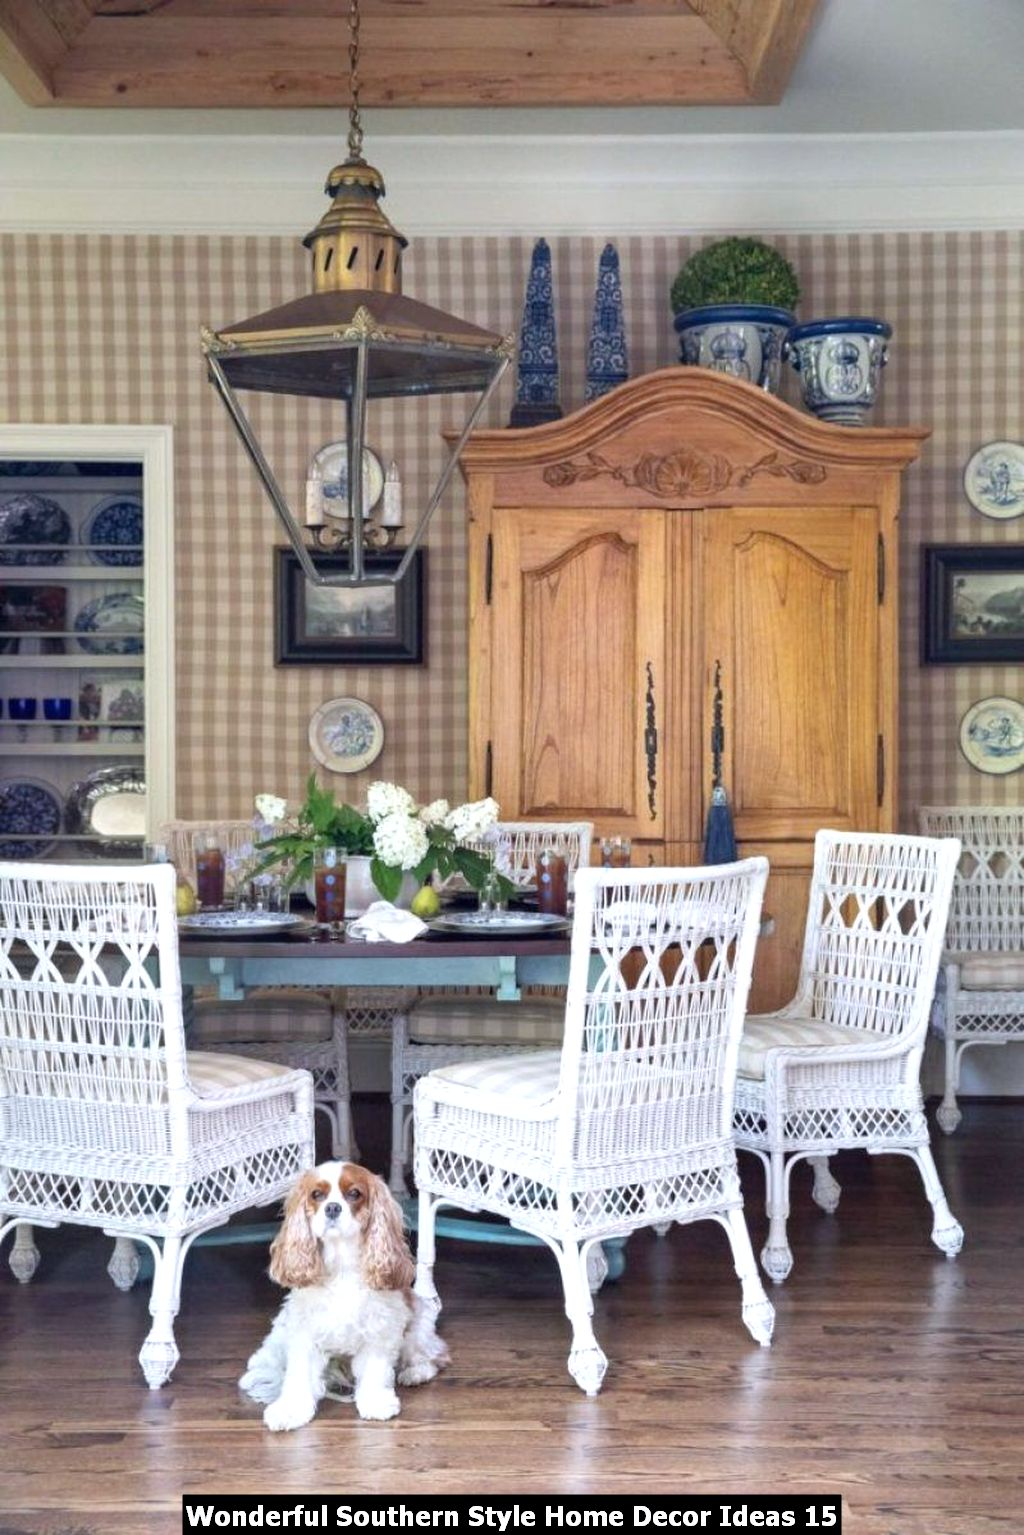 Wonderful Southern Style Home Decor Ideas 15